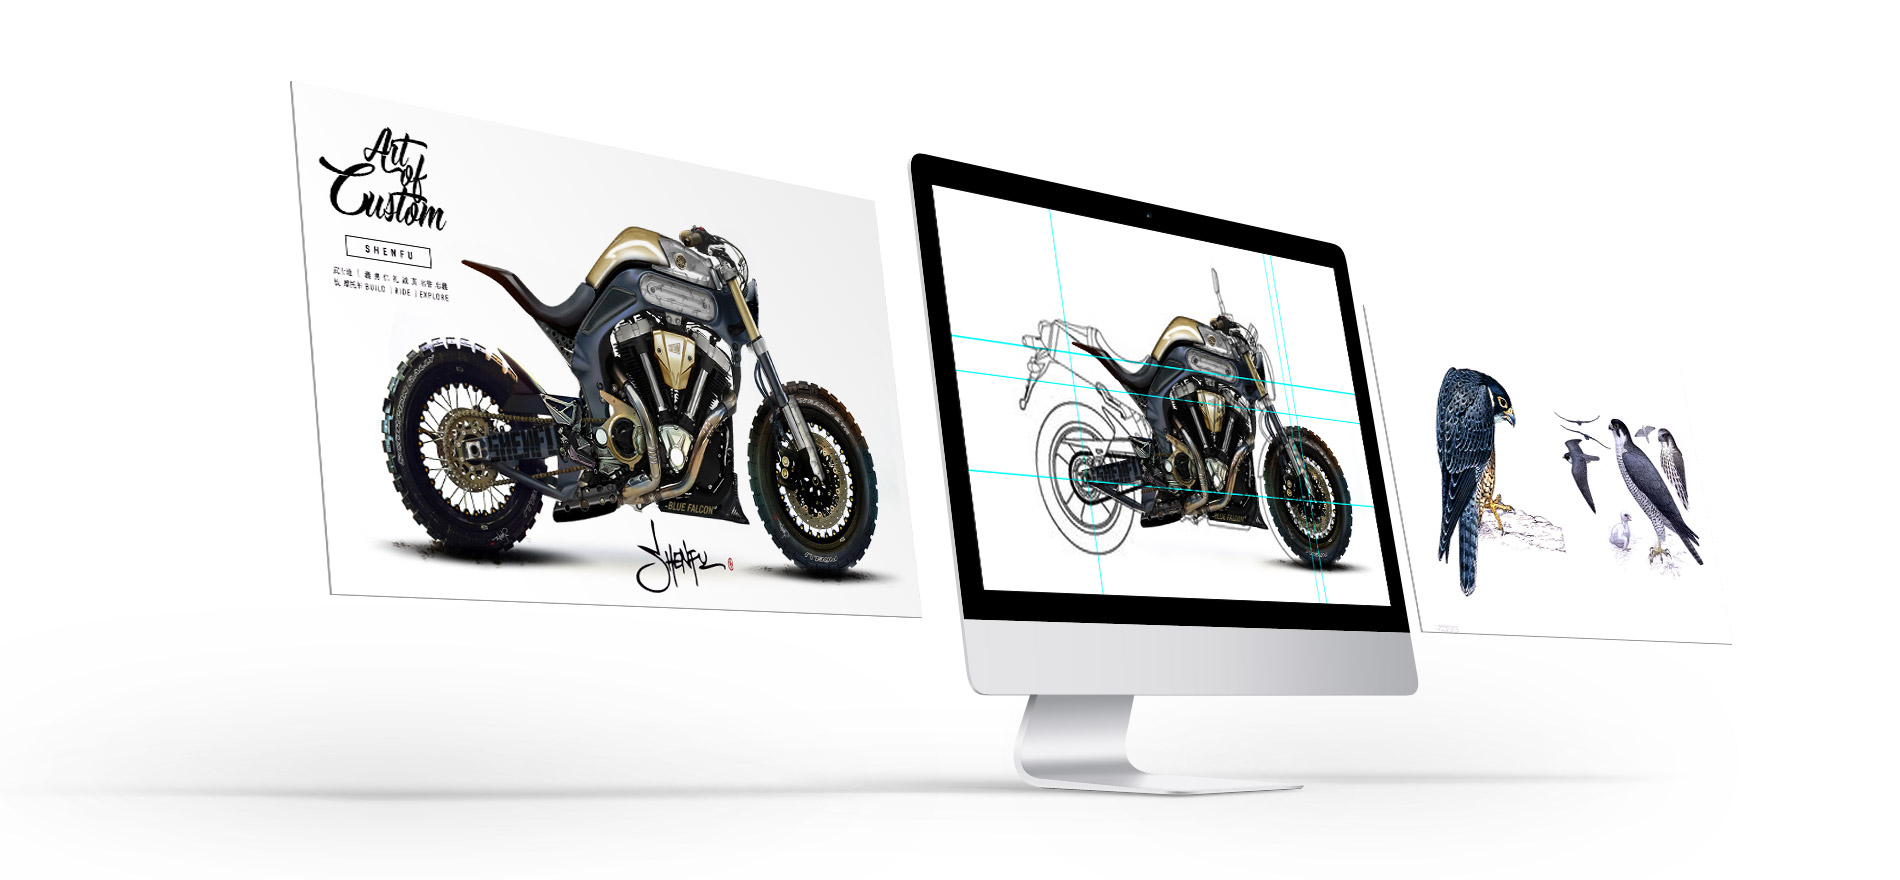 Titan_CustomBikes_CafeRacer_Austria-Atelier_SHENFU_Concept_Idea_Illustration_Digital_Artwork_Motorycle-Drawing-Artwork Motorrad BMW Umbau Graz